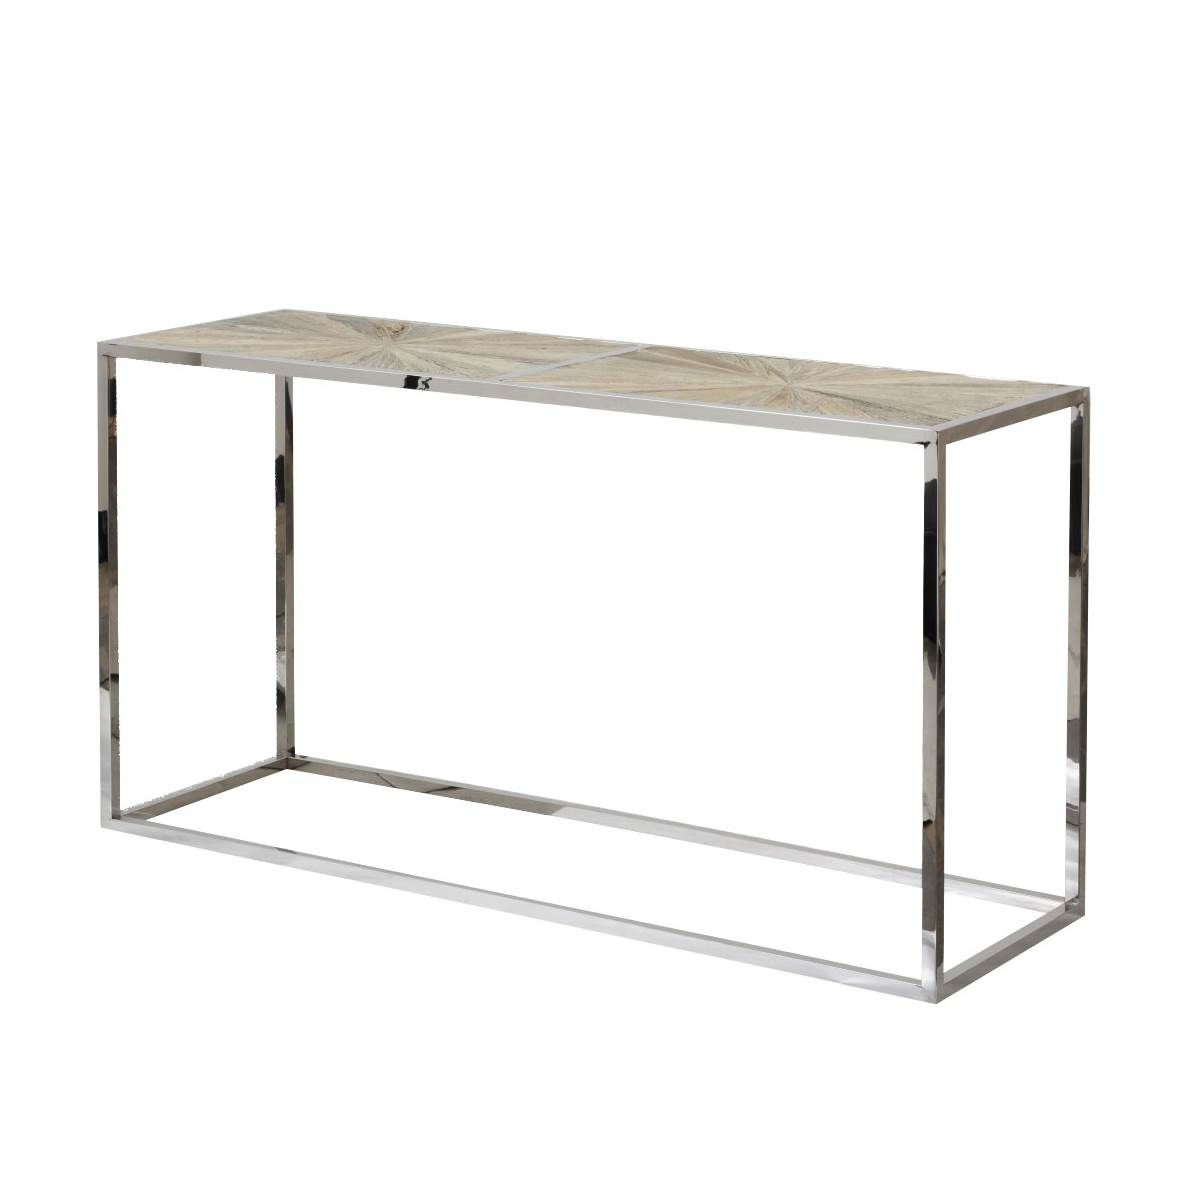 Parquet Console Table | Marshall | Pinterest Inside Parsons Grey Solid Surface Top & Dark Steel Base 48X16 Console Tables (View 14 of 20)